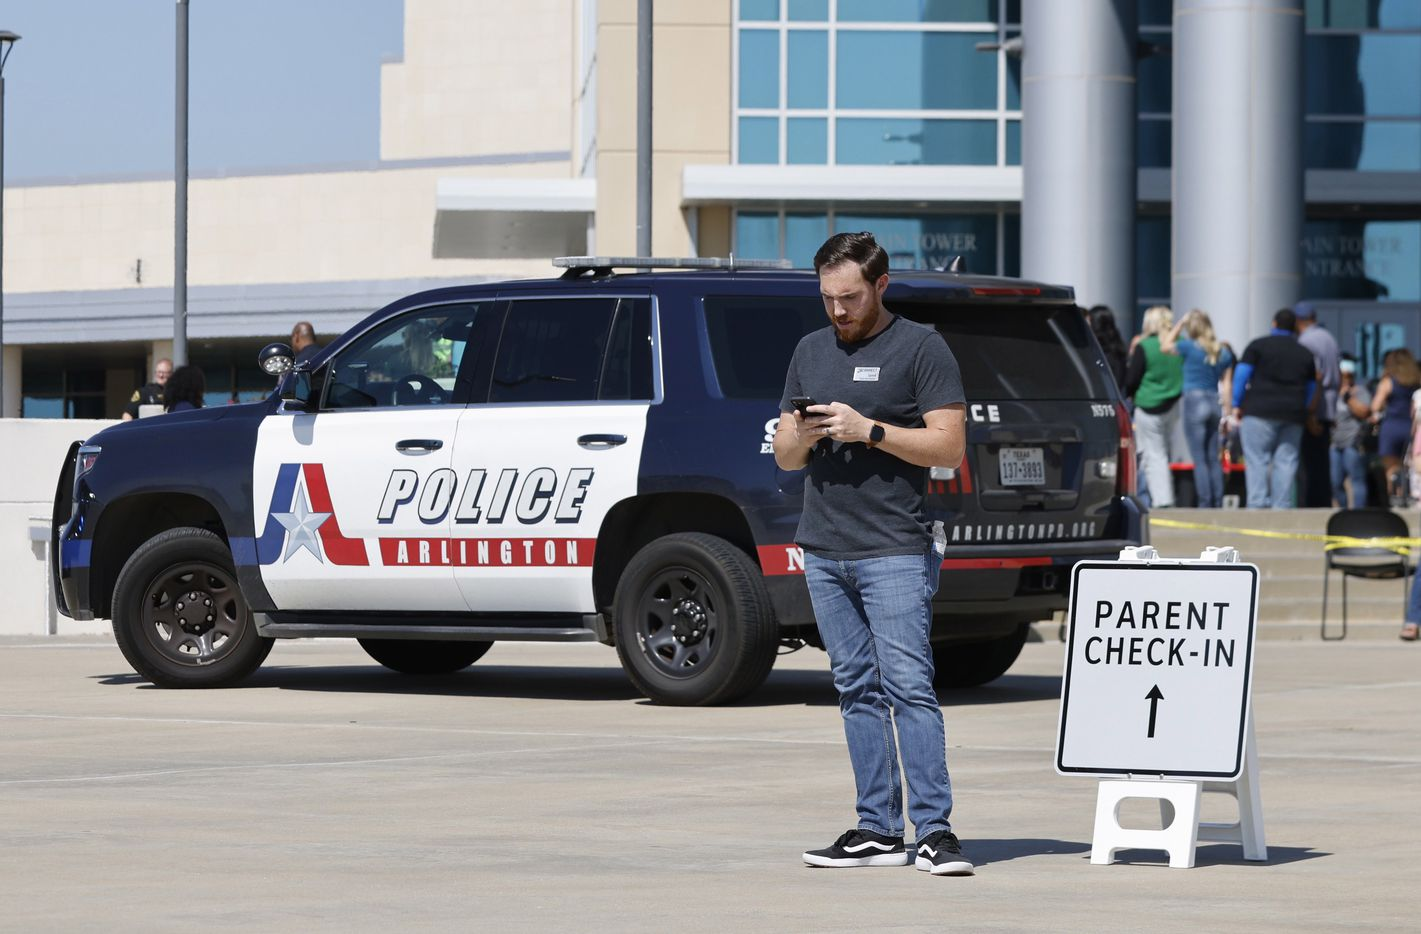 Parents of Timberview High School students wait outside of the Mansfield ISD Center for The Performing Arts on Wednesday, October 6, 2021 in Mansfield, TX.Four people were injured in a shooting at Timberview High School in Arlington on Wednesday morning, and authorities said the suspect remained at large.  (Elias Valverde II/The Dallas Morning News)